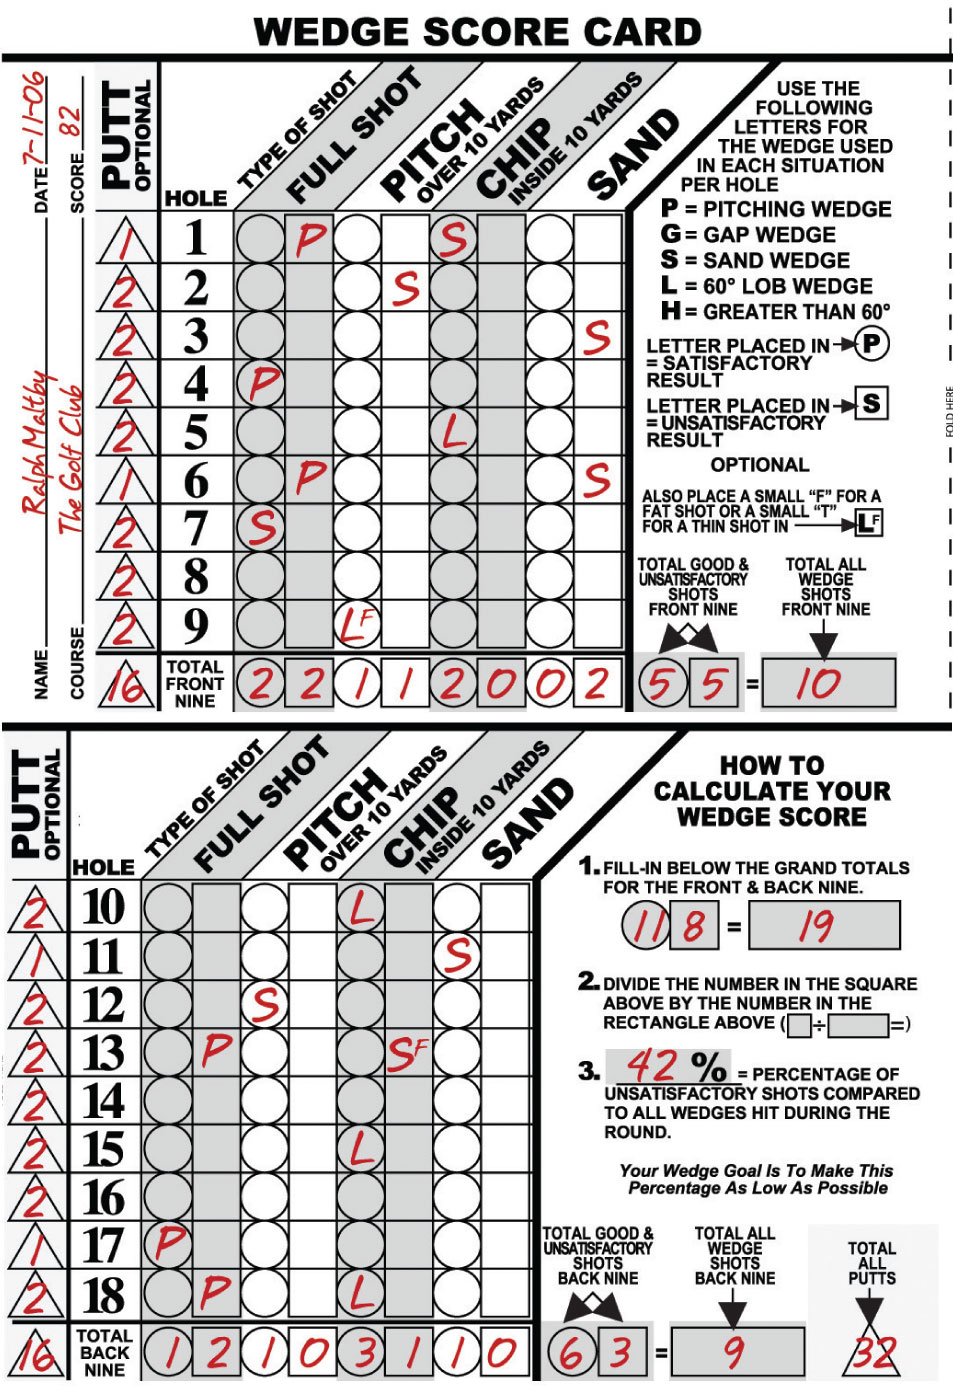 Wedge Score Card Example